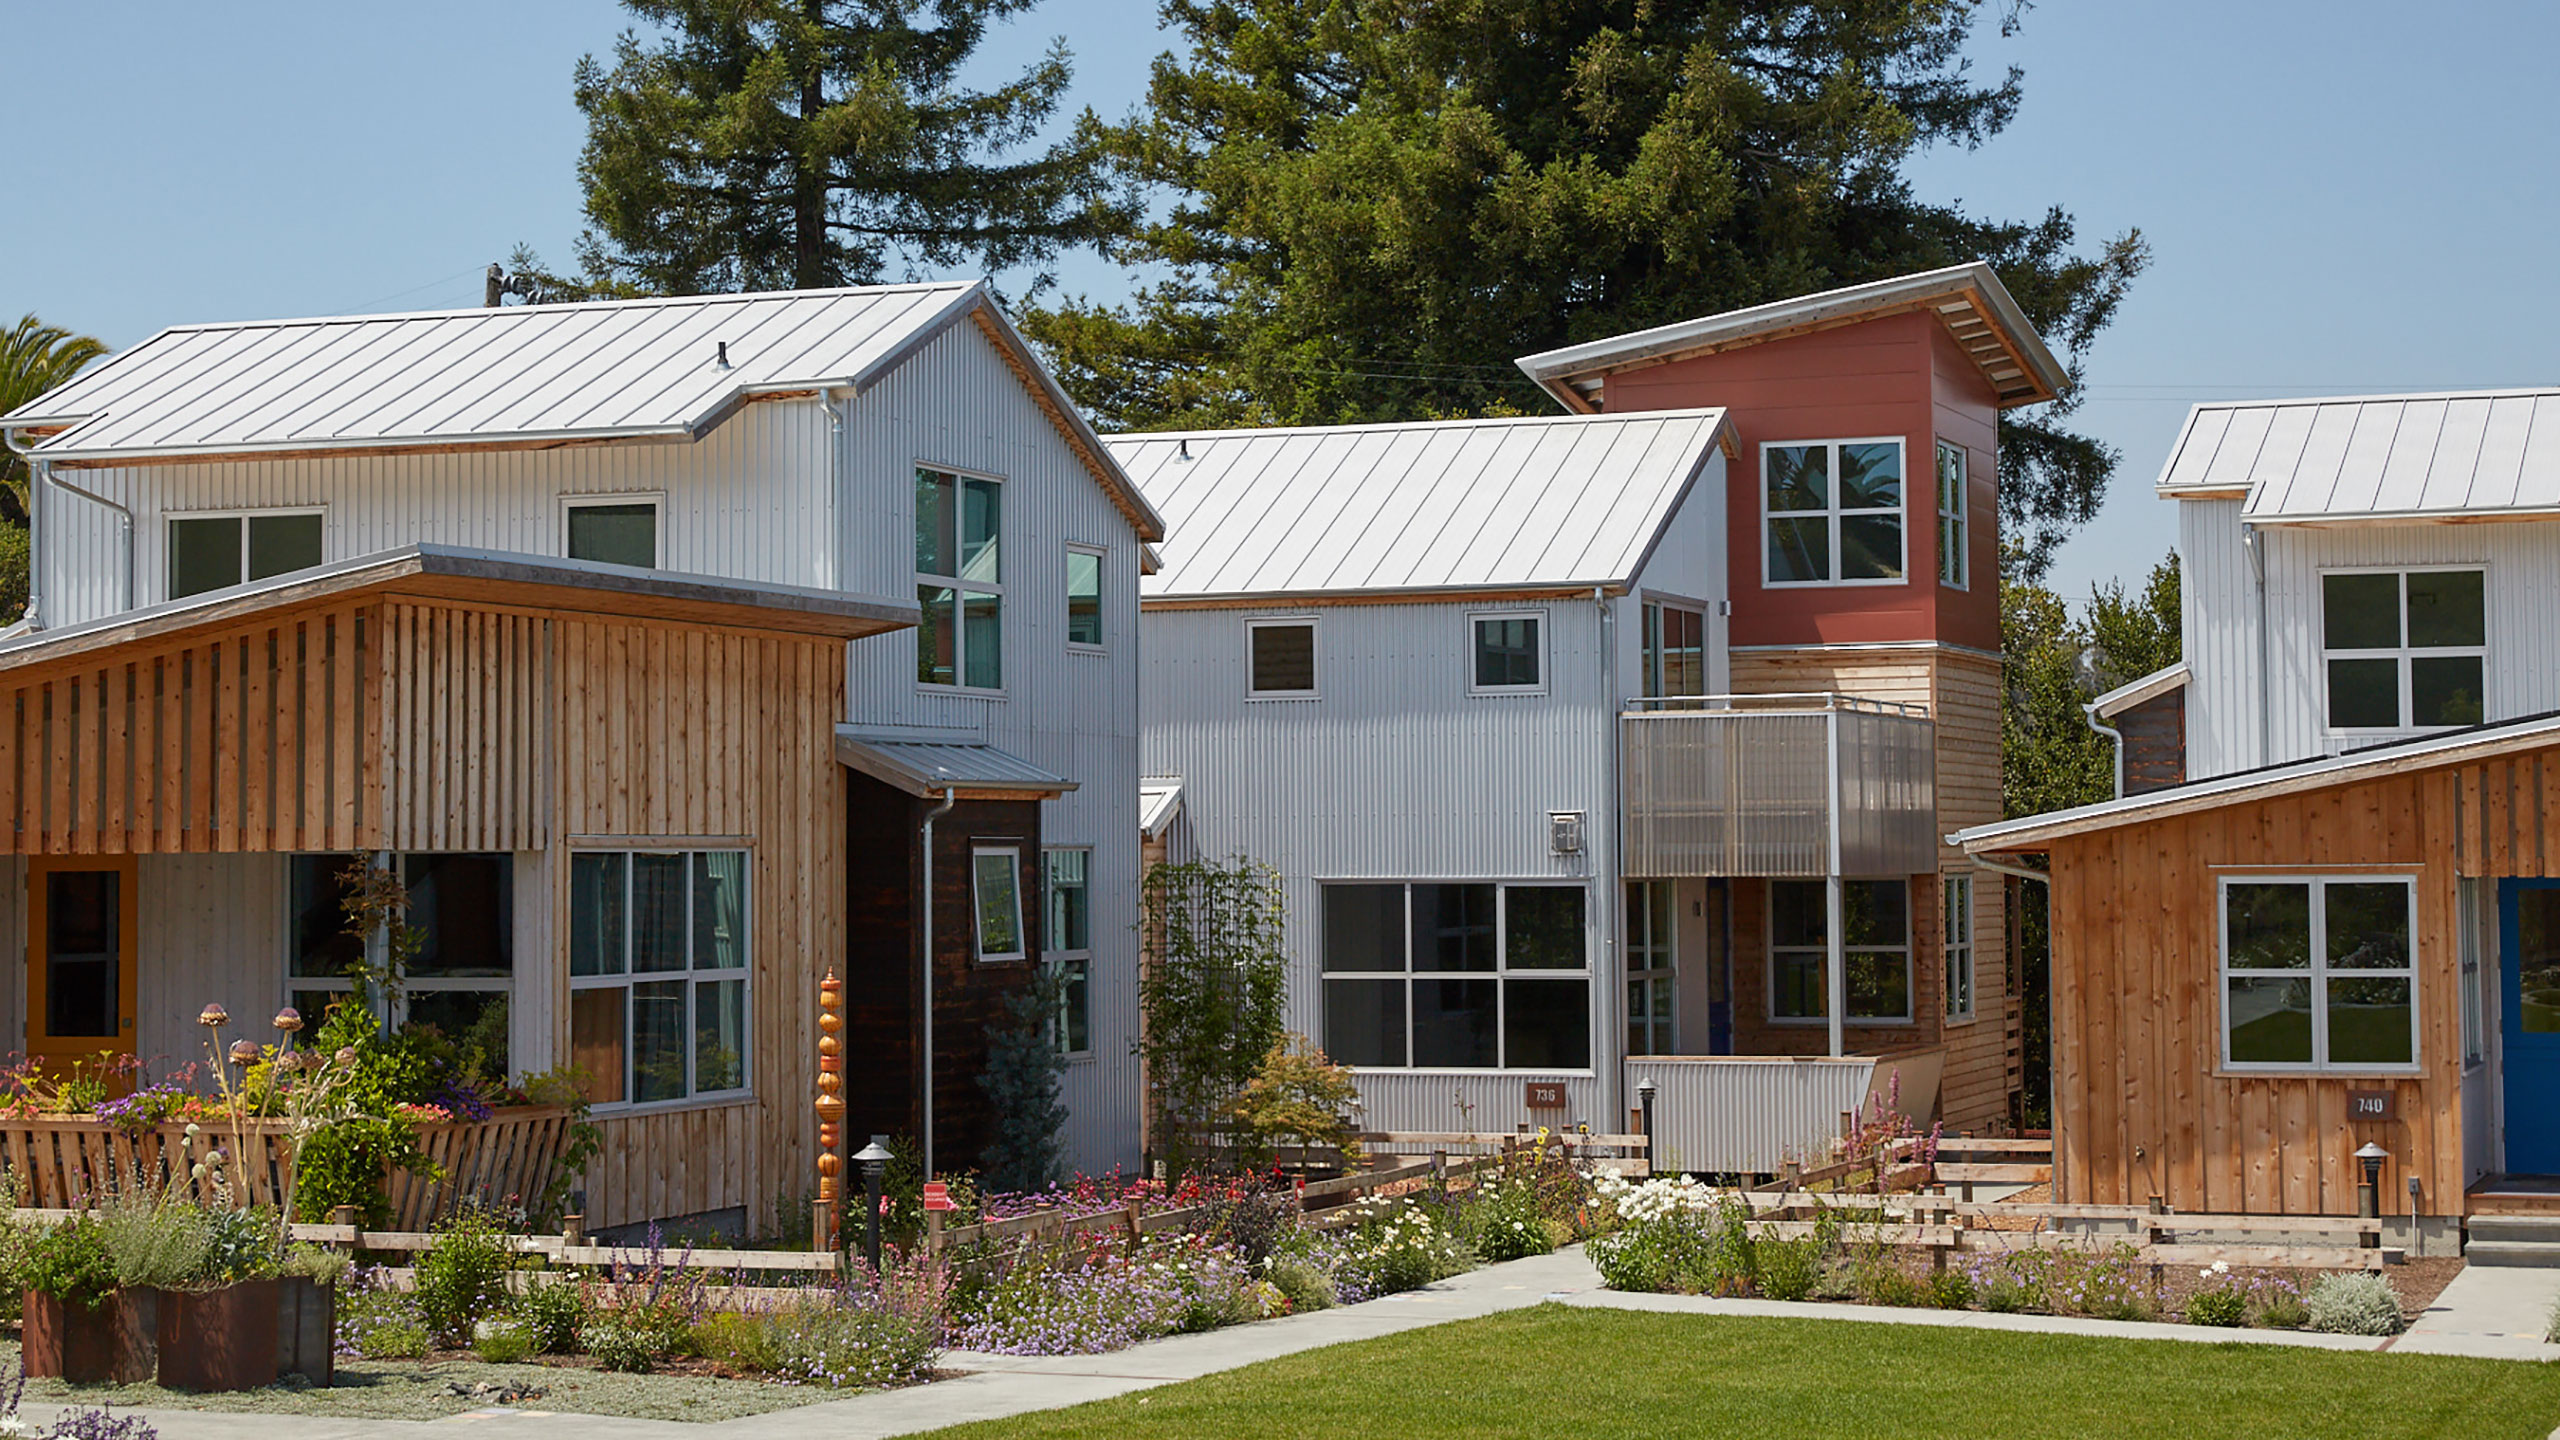 Sustainable-Architecture-Sonoma-County-Keller-Court-exterior-view-of-houses-with-corrugated-metal-siding-and-towers